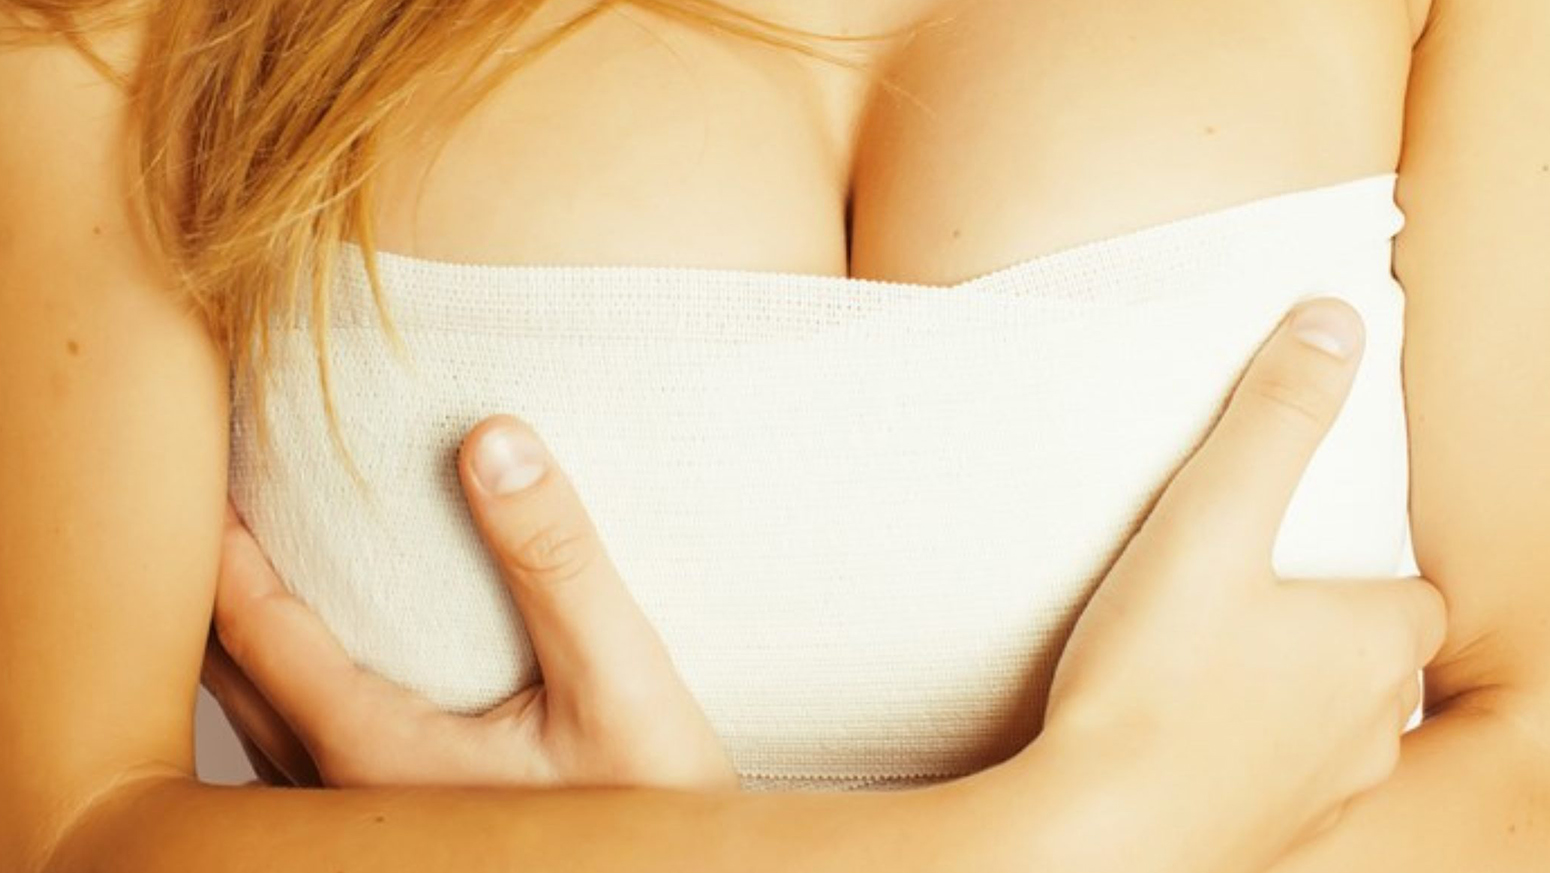 breast augmentation surgery near me